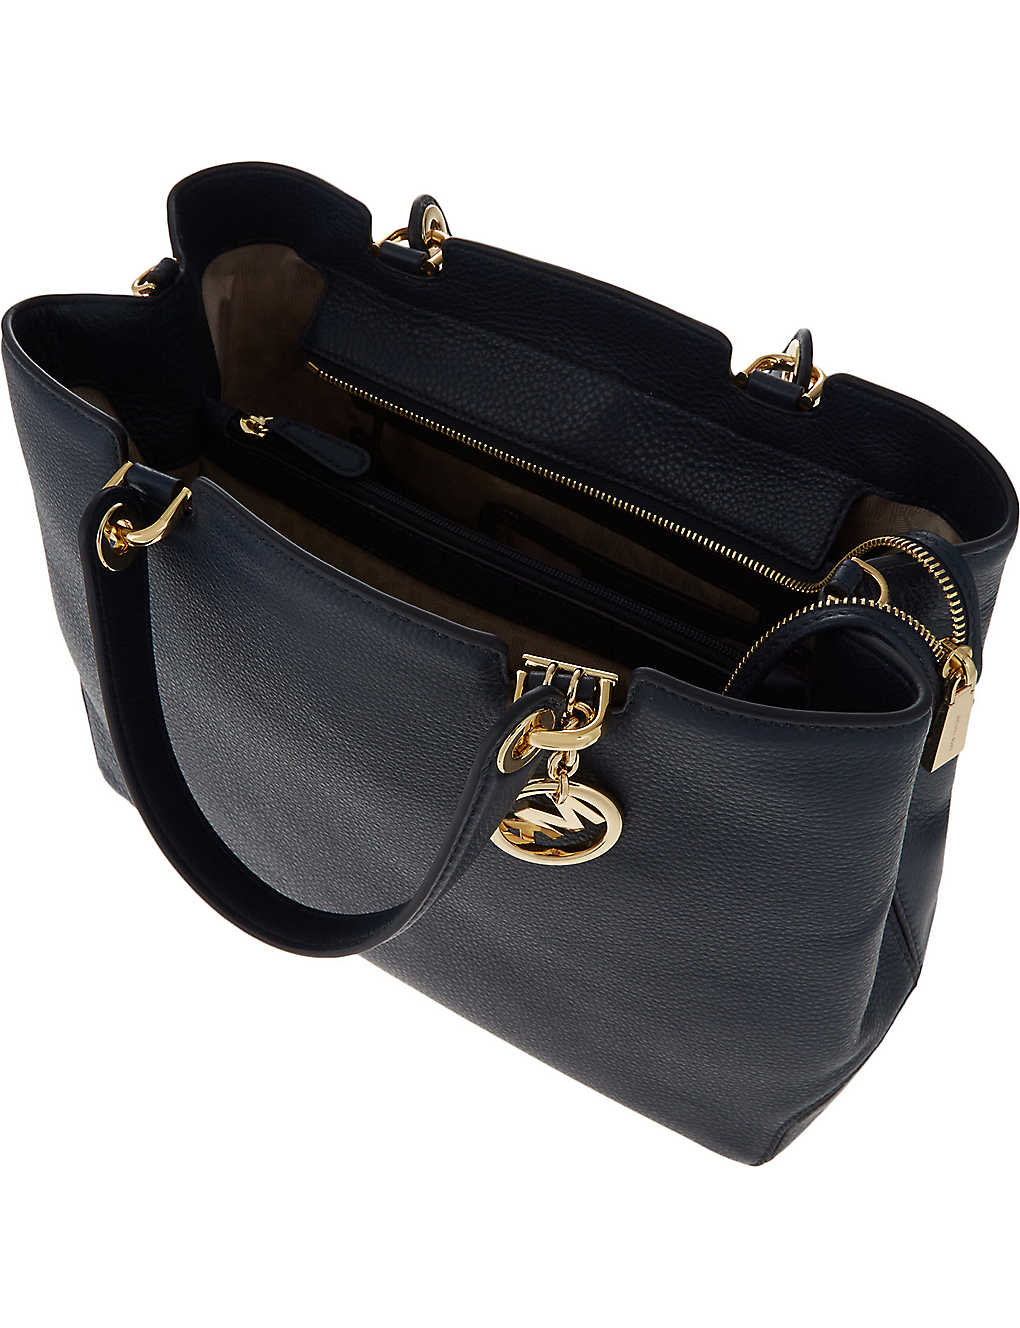 2d578d8bfd24 MICHAEL MICHAEL KORS - Anabelle extra-large leather tote ...